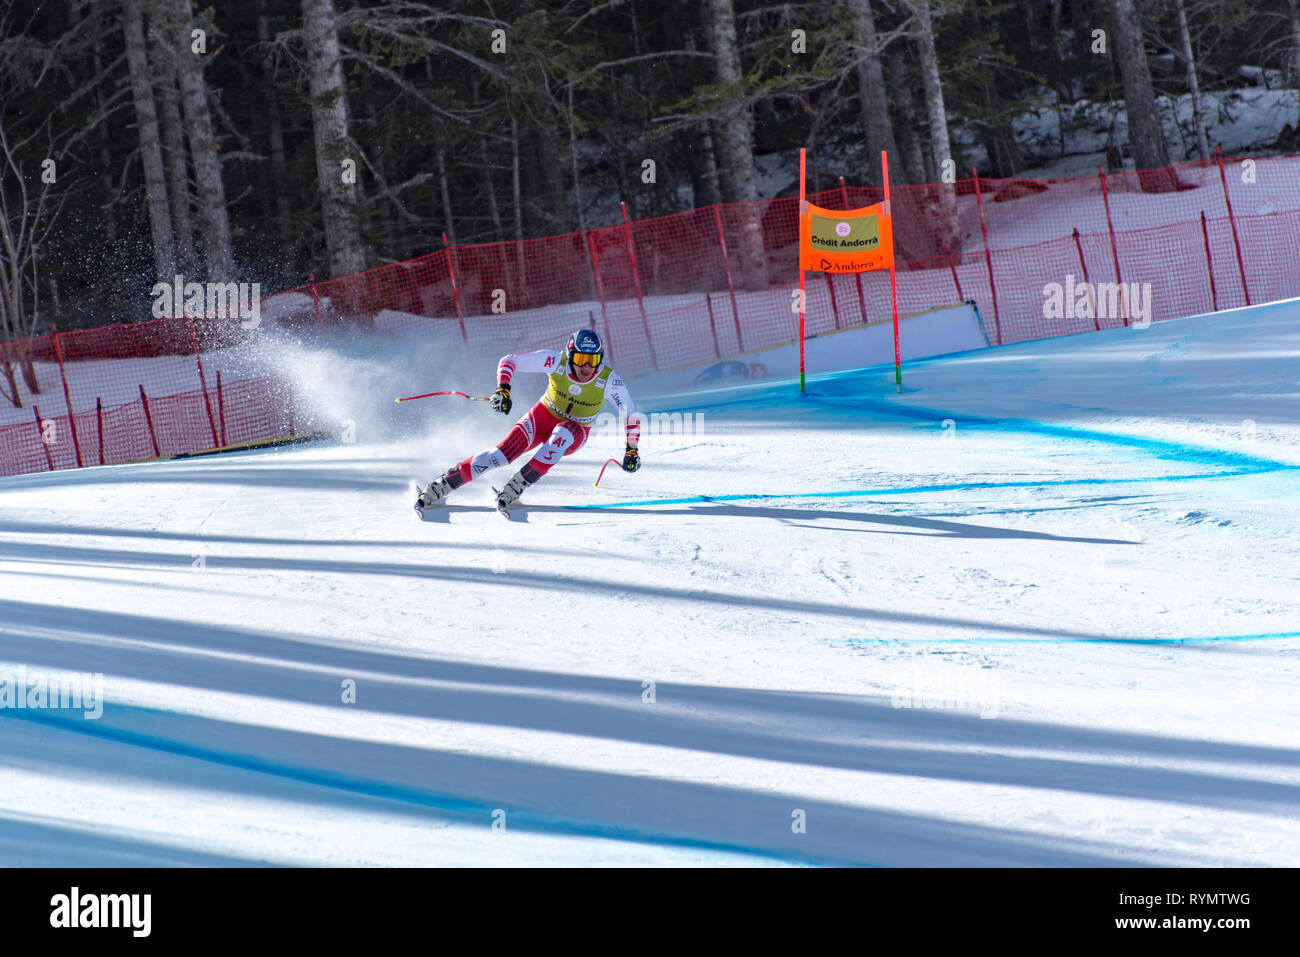 Matthias Mayer AUT  takes part in the PRUEBA run for the SKI WORLD FINALS DOWNHILL MEN  race of the FIS Alpine Ski World Cup Finals at Soldeu-El Tarte - Stock Image